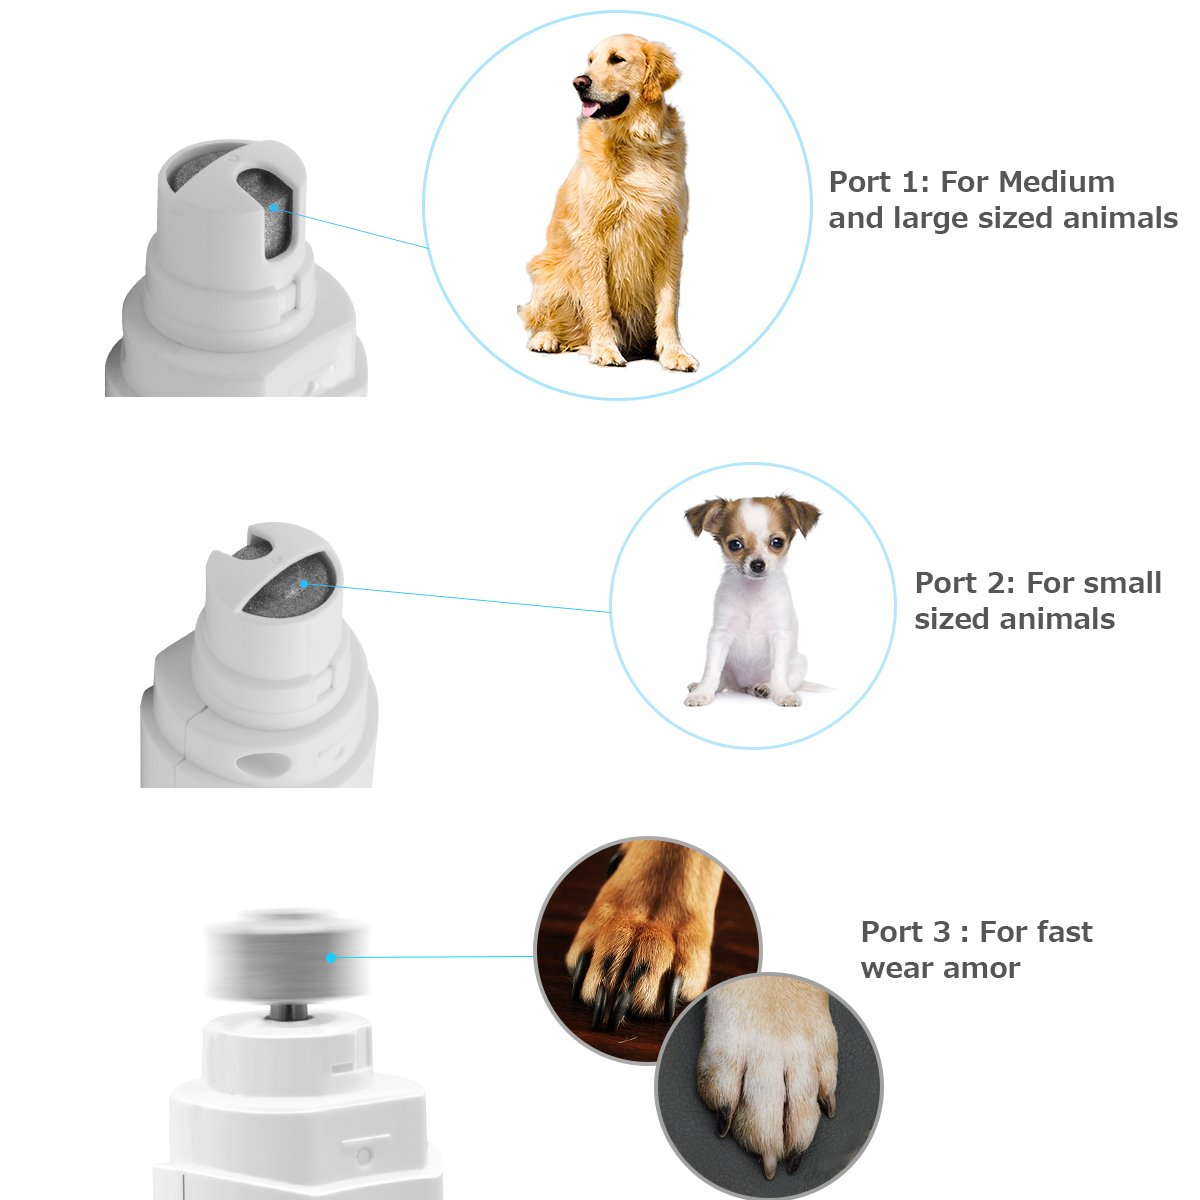 TEKITSFUN Pet Nail Grinder, Rechargeable Electronic USB Nail Trimming Clipper with Two Speed Mode, Three Ports Options for Birds, Rabbits, Cats, Small, Medium and Large Dogs by TEKITSFUN (Image #2)